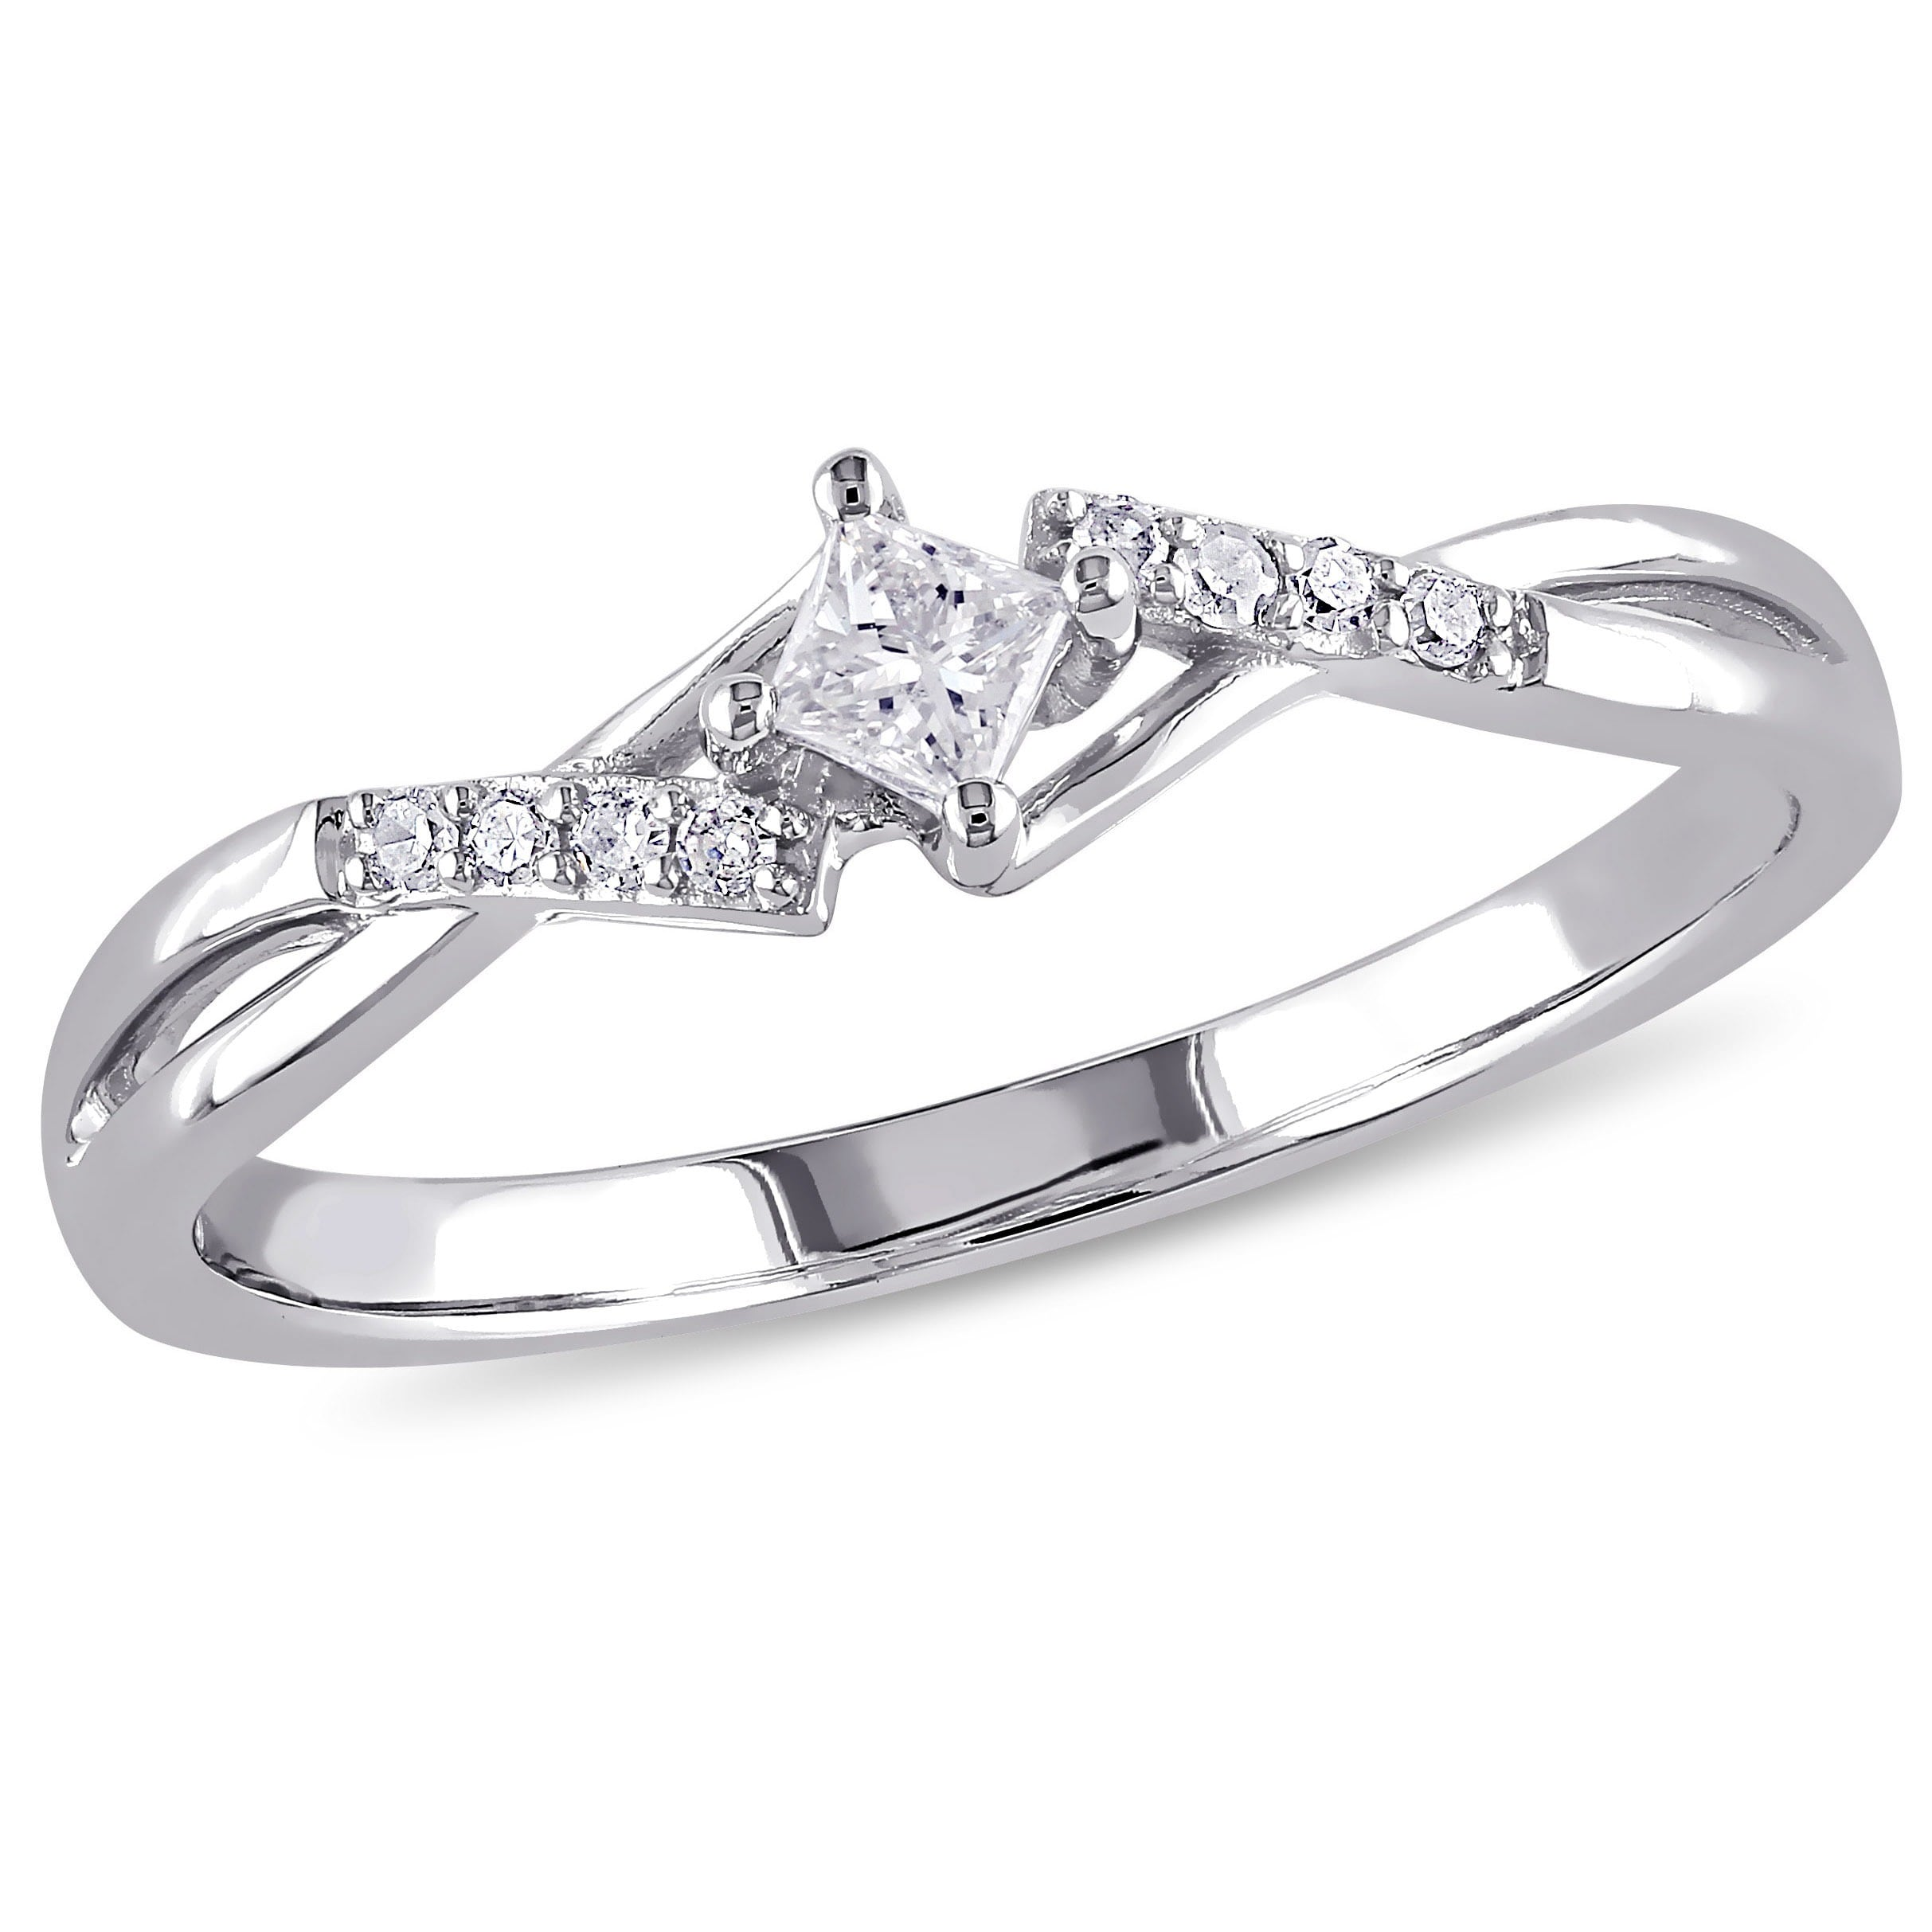 mirror ring best rings product in cross engagement dubai diamonds shop wedding jewellery